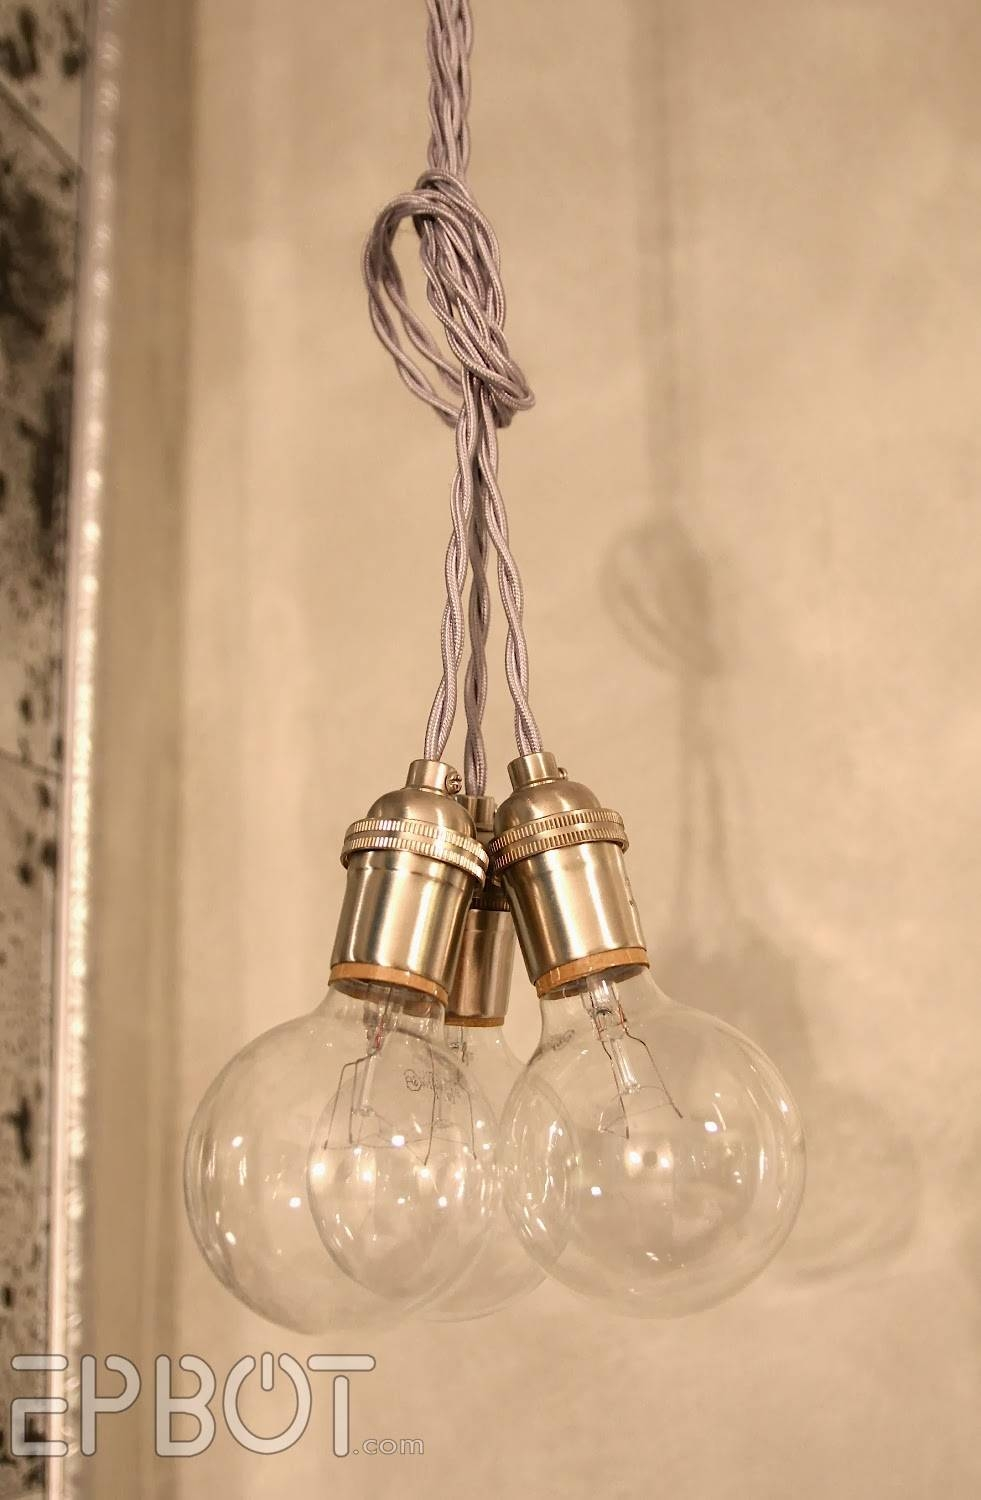 Epbot: Wire Your Own Pendant Lighting - Cheap, Easy, & Fun! in Multiple Pendant Lights One Fixture (Image 4 of 15)